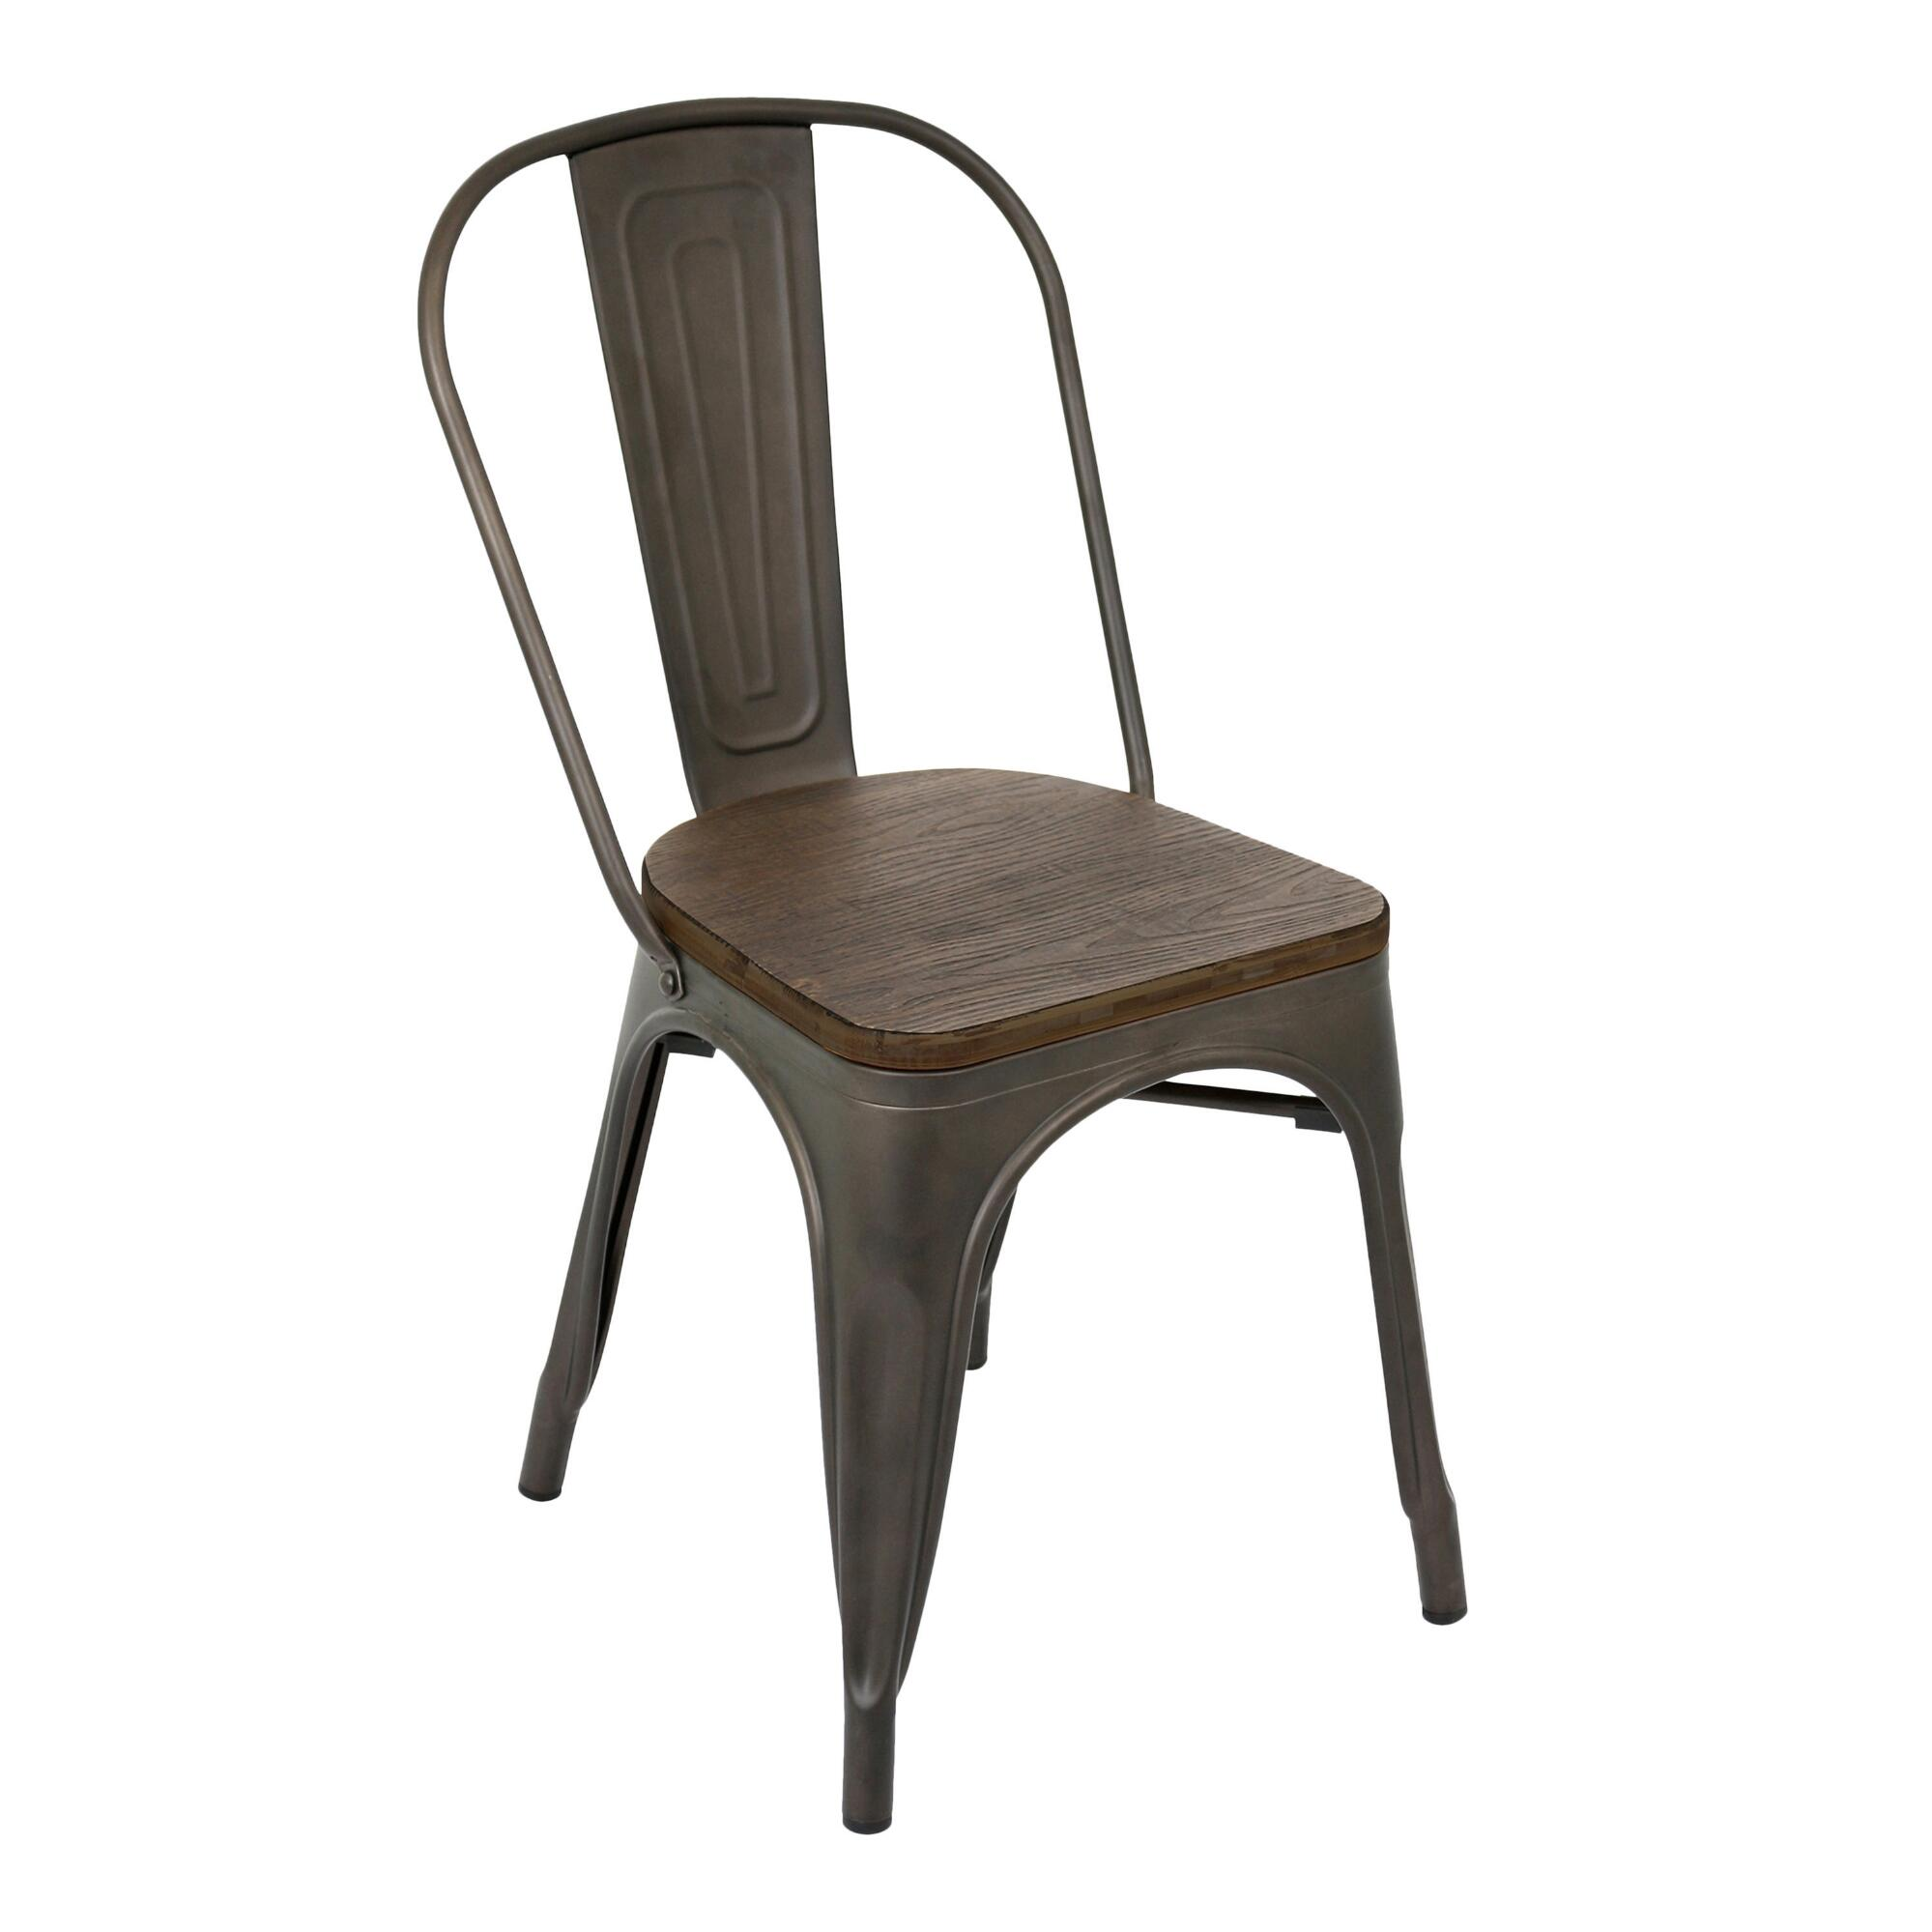 Espresso metal and wood arwen dining chairs set of